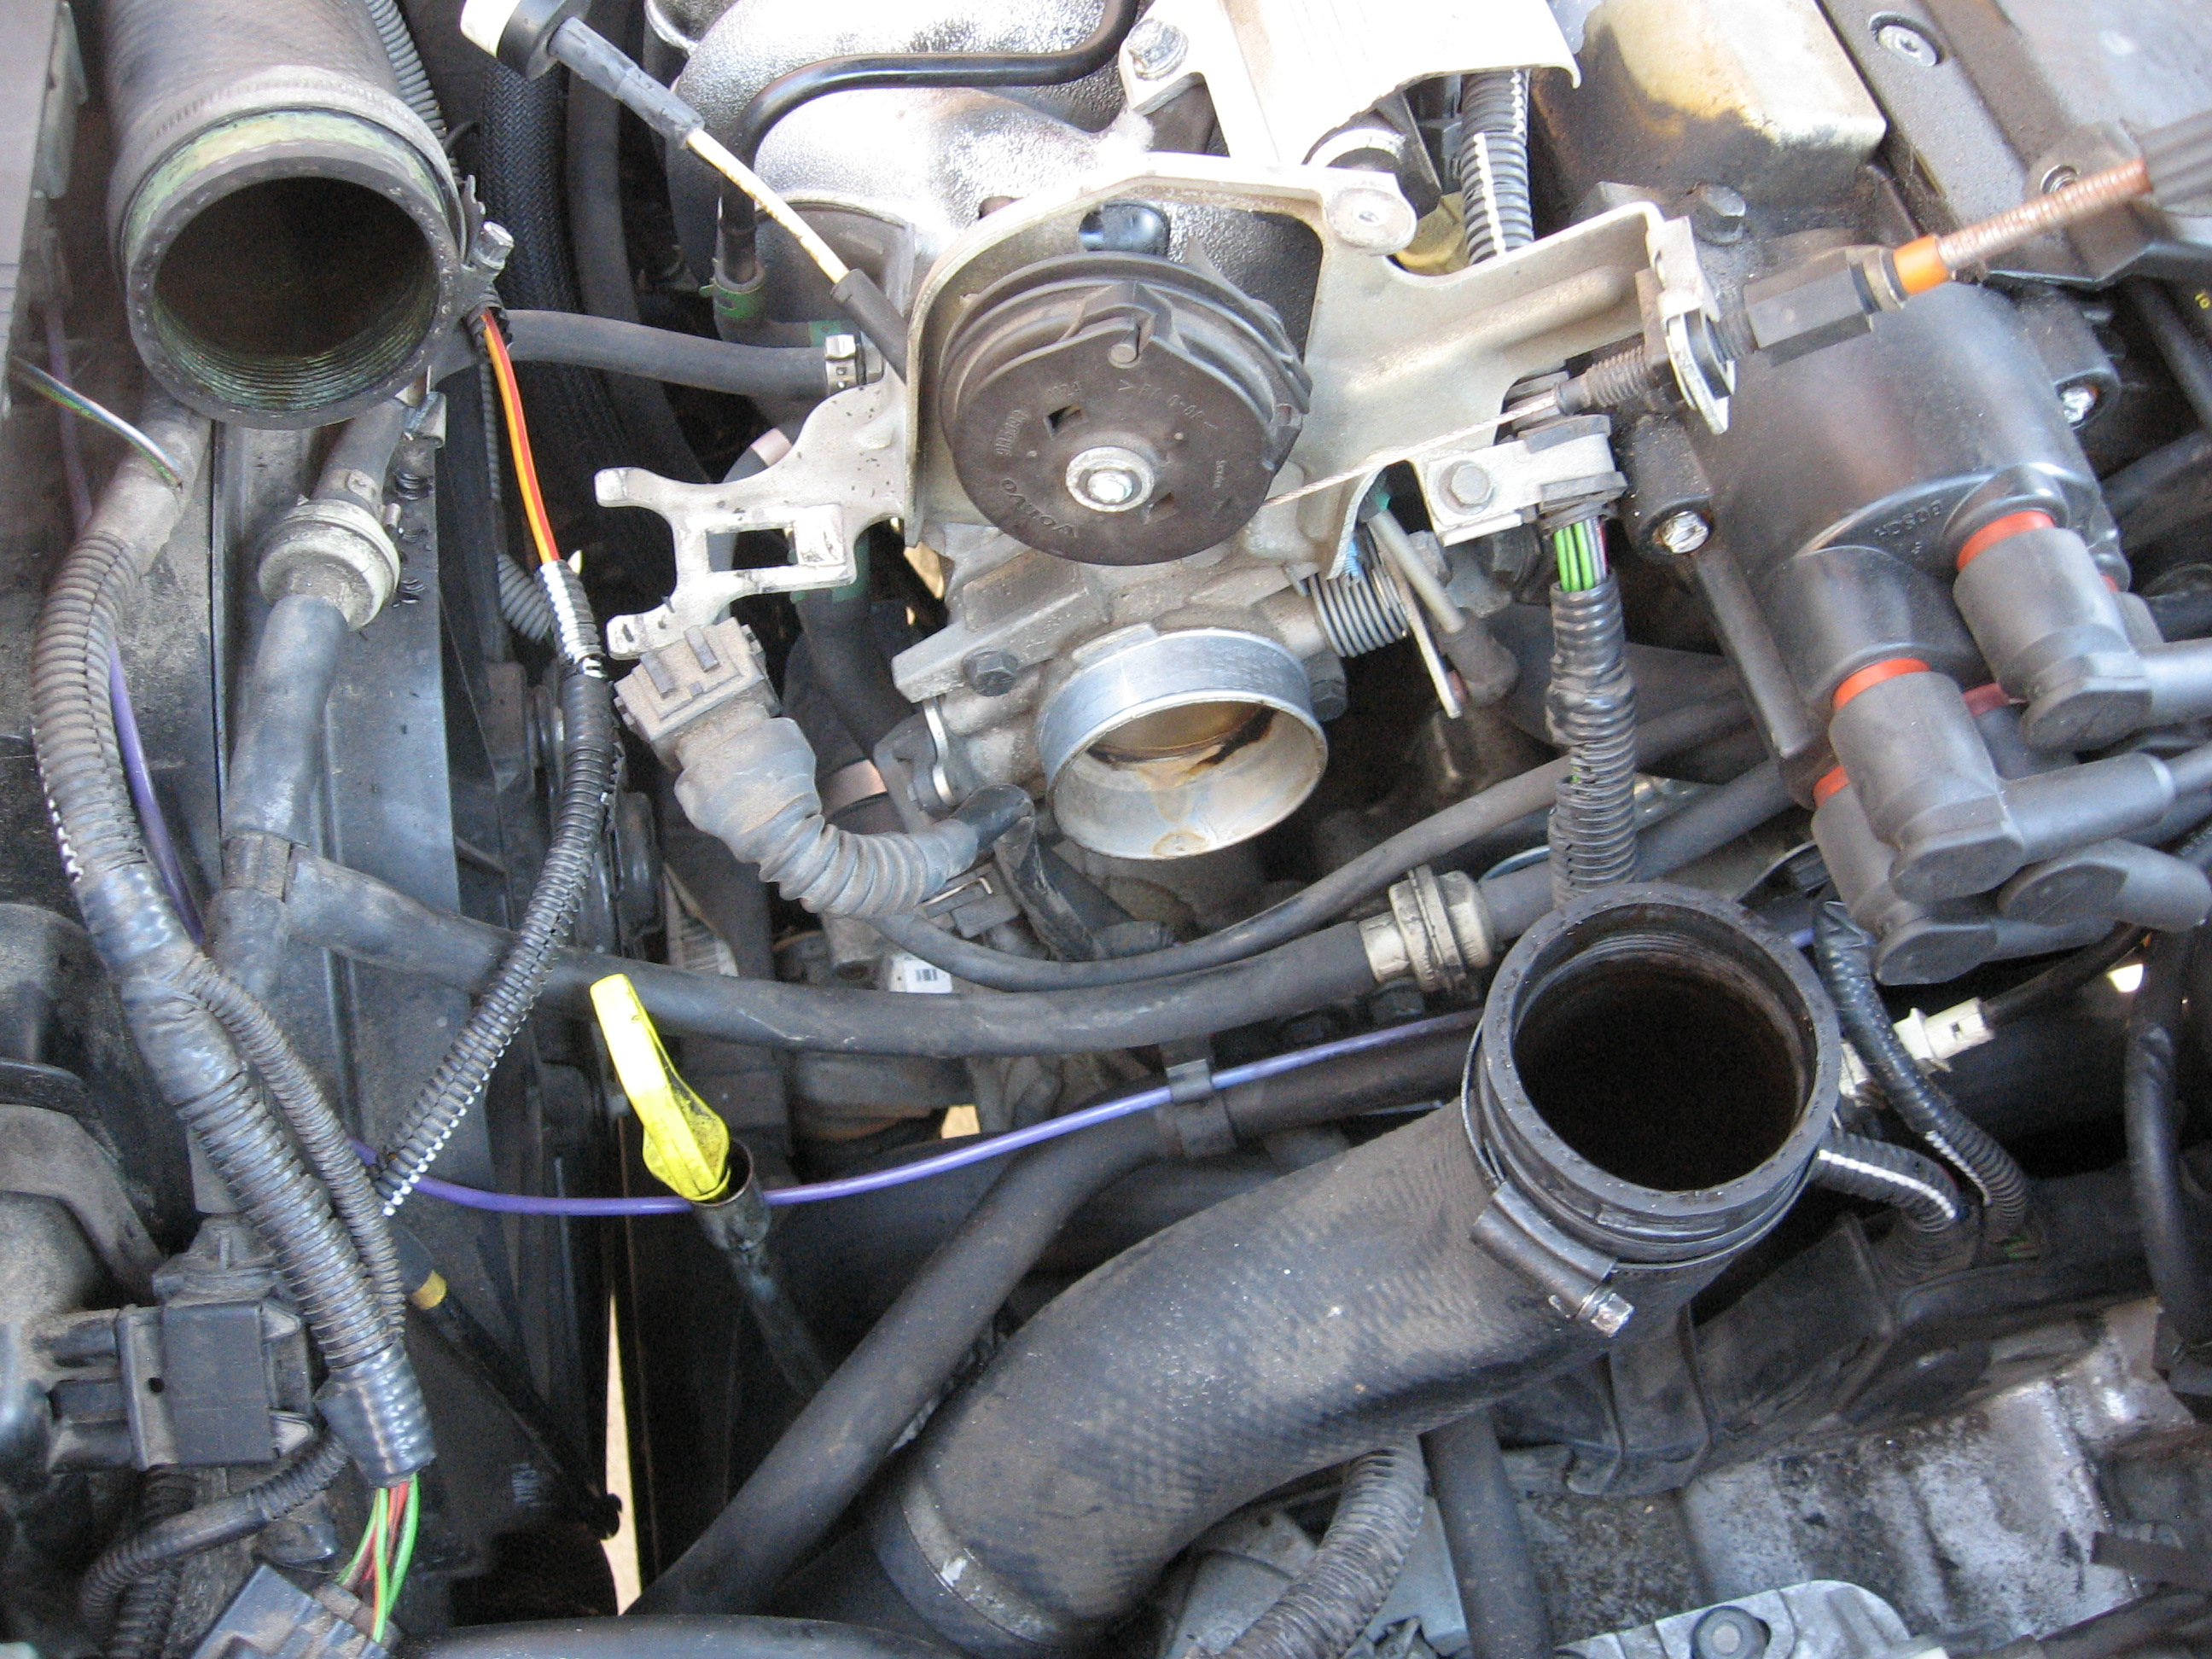 PCV System Repair on a Volvo 5-cylinder - Volvo Forums